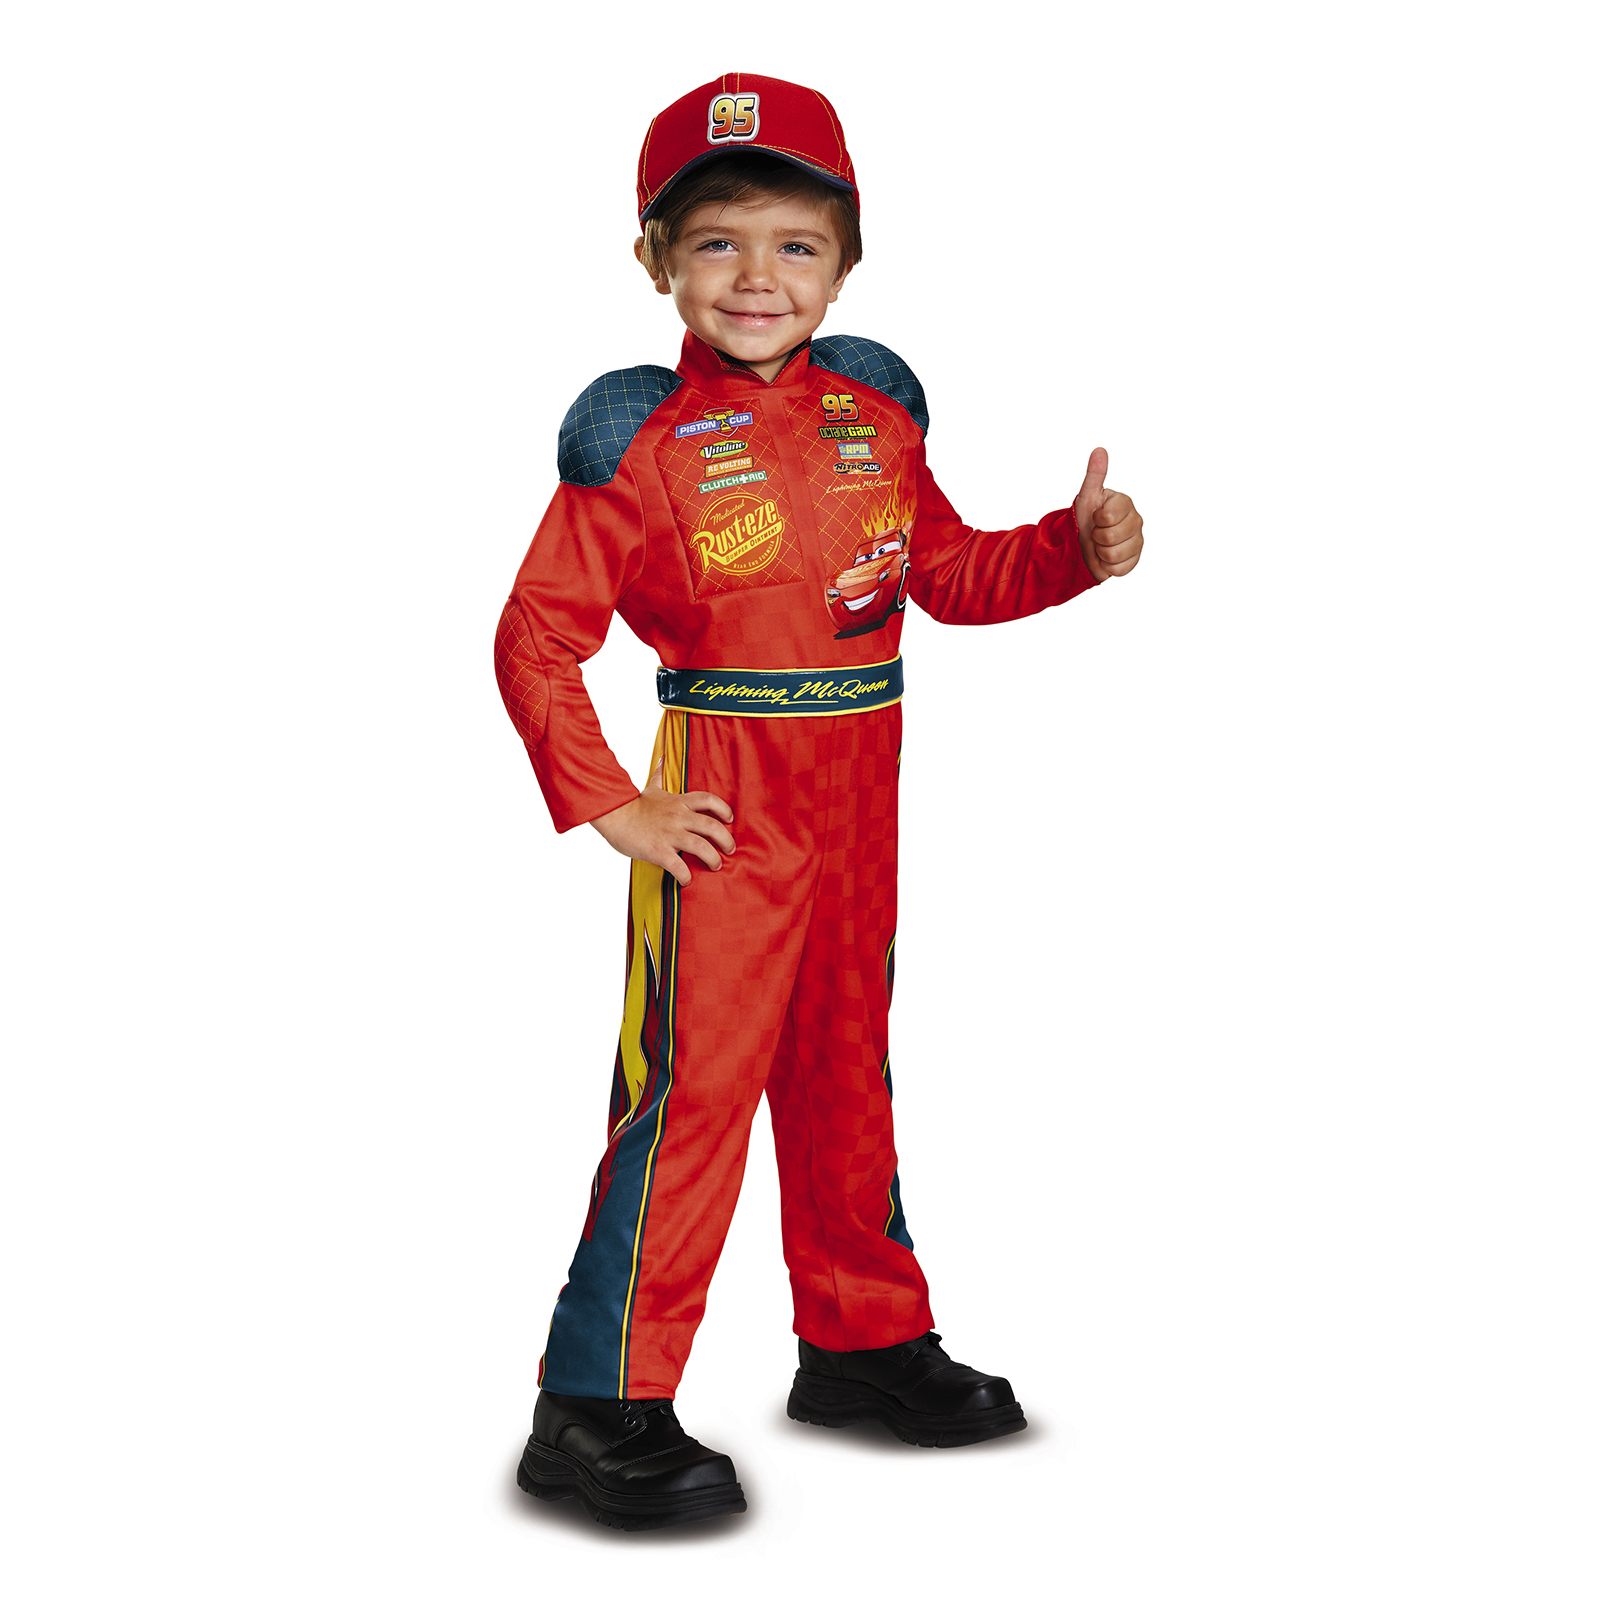 Formula 1 One Race Car Wallpaper Bright Cars 3 Lightning Mcqueen Classic Toddler Costume